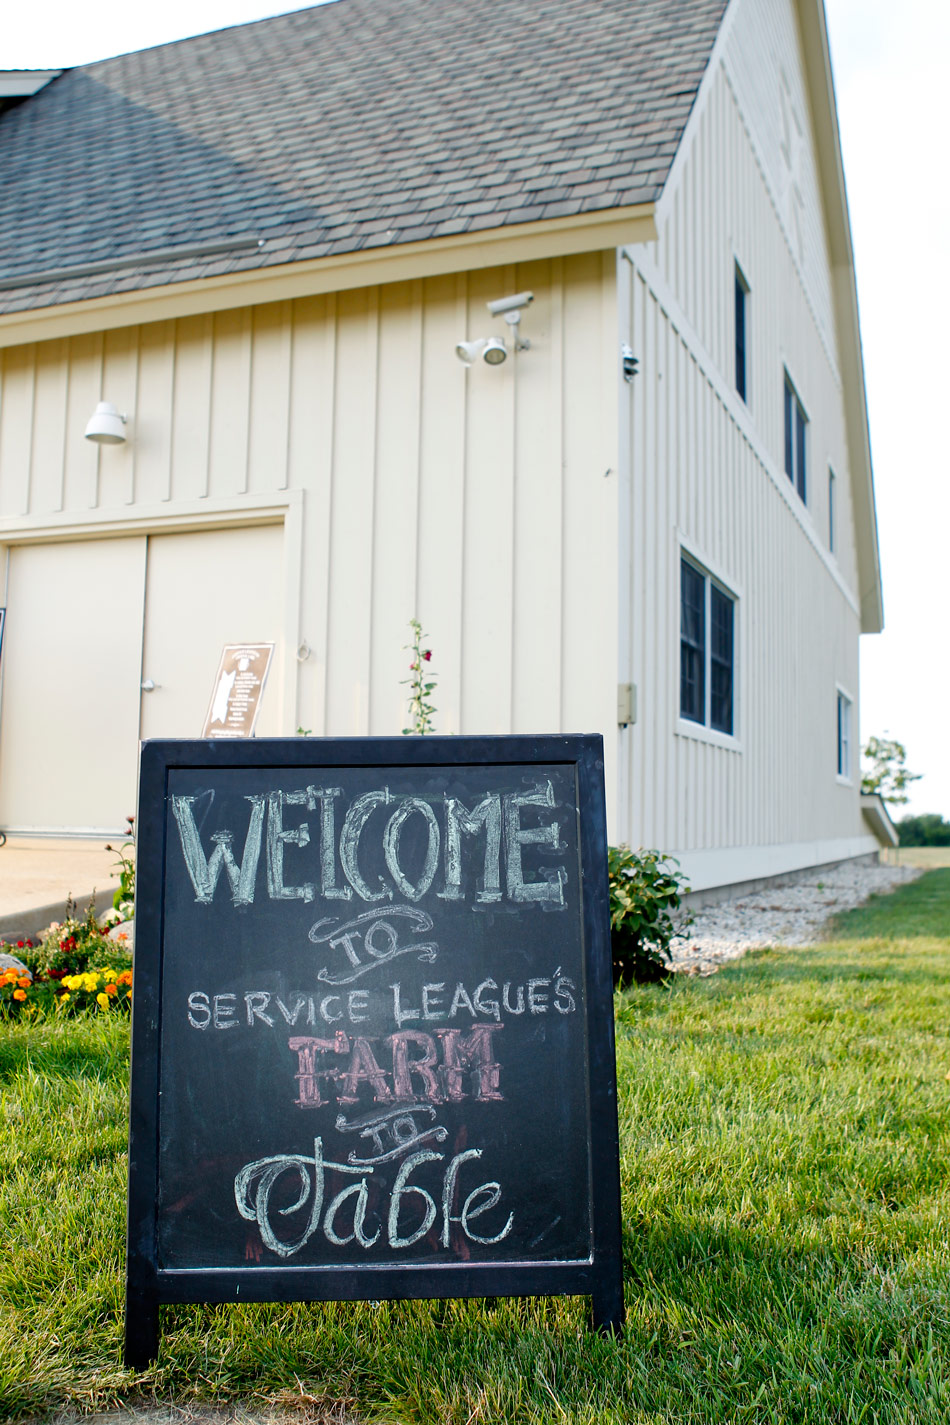 event-photographer-madison-wi-dane-county-gala-fundraiser-ruthie-hauge-photography-farm-to-table 03.jpg